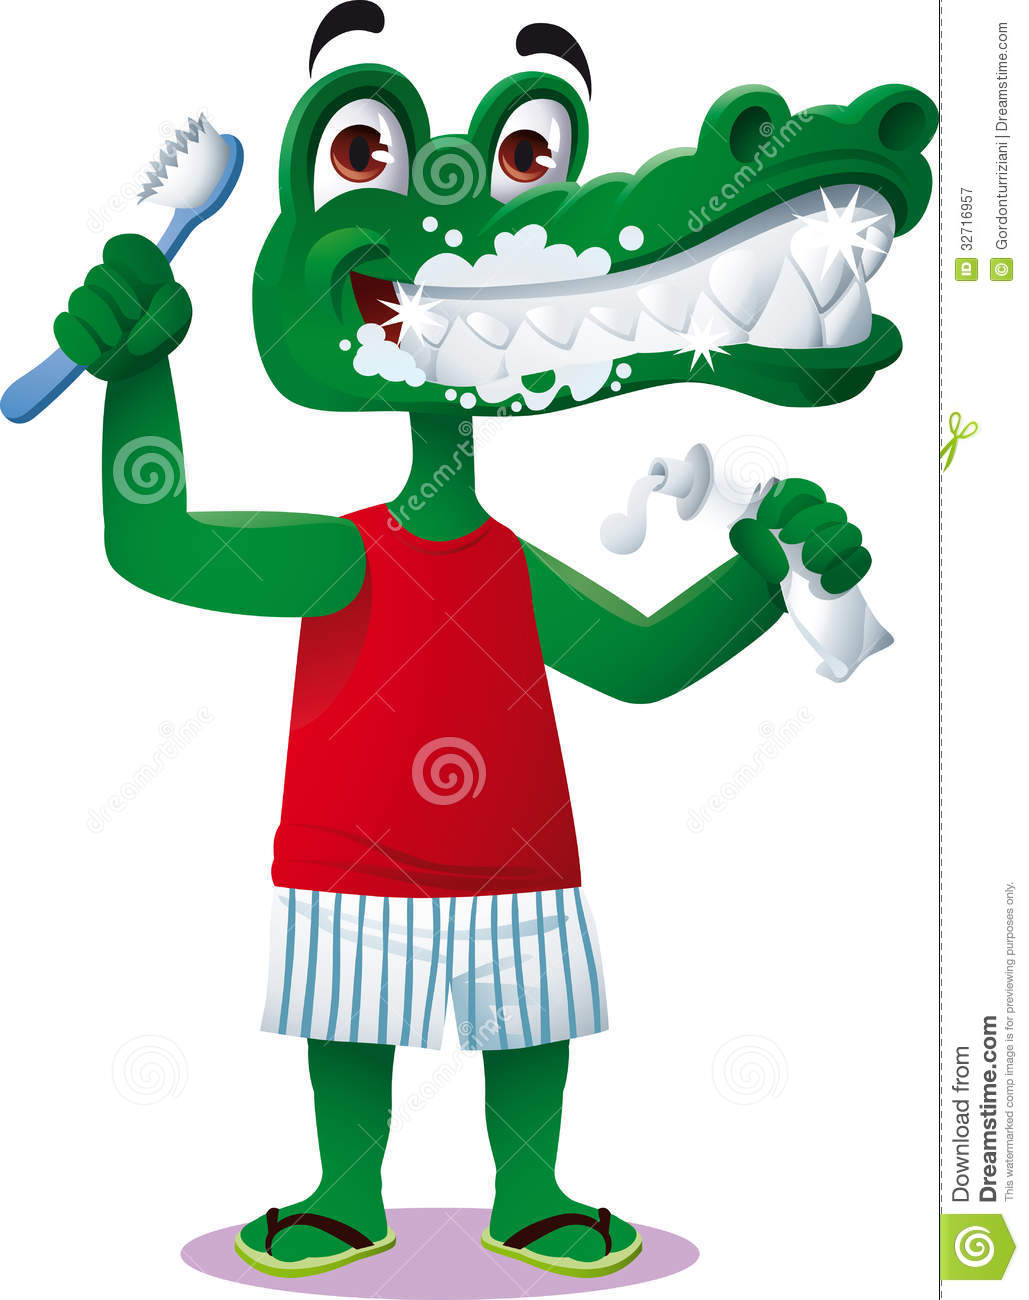 Crocodile Dental Care Royalty Free Stock Photography   Image  32716957